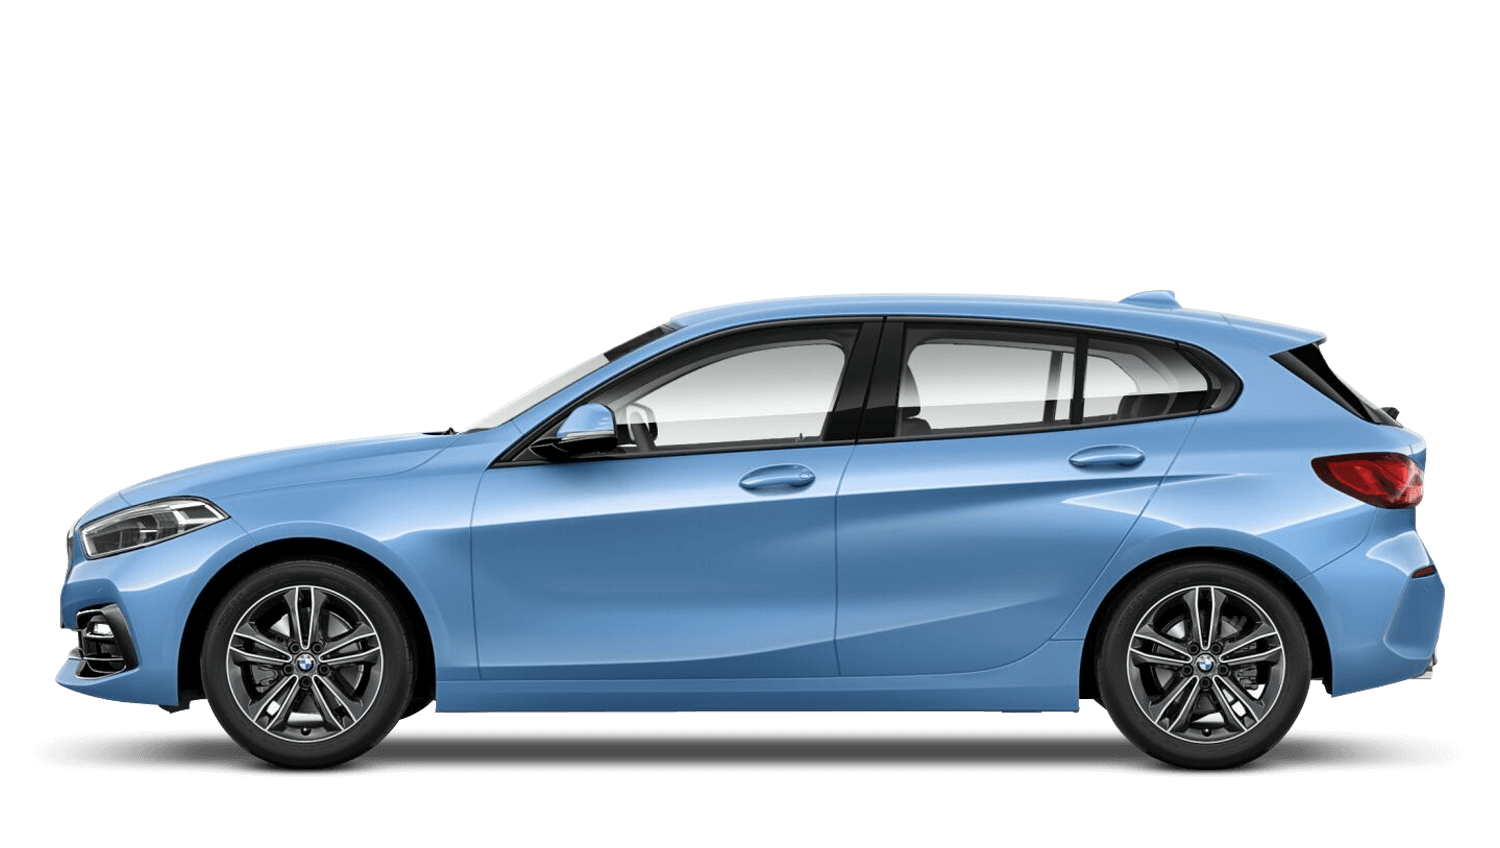 Seaside Blue (Metallic) BMW 1 Series Sports Hatch